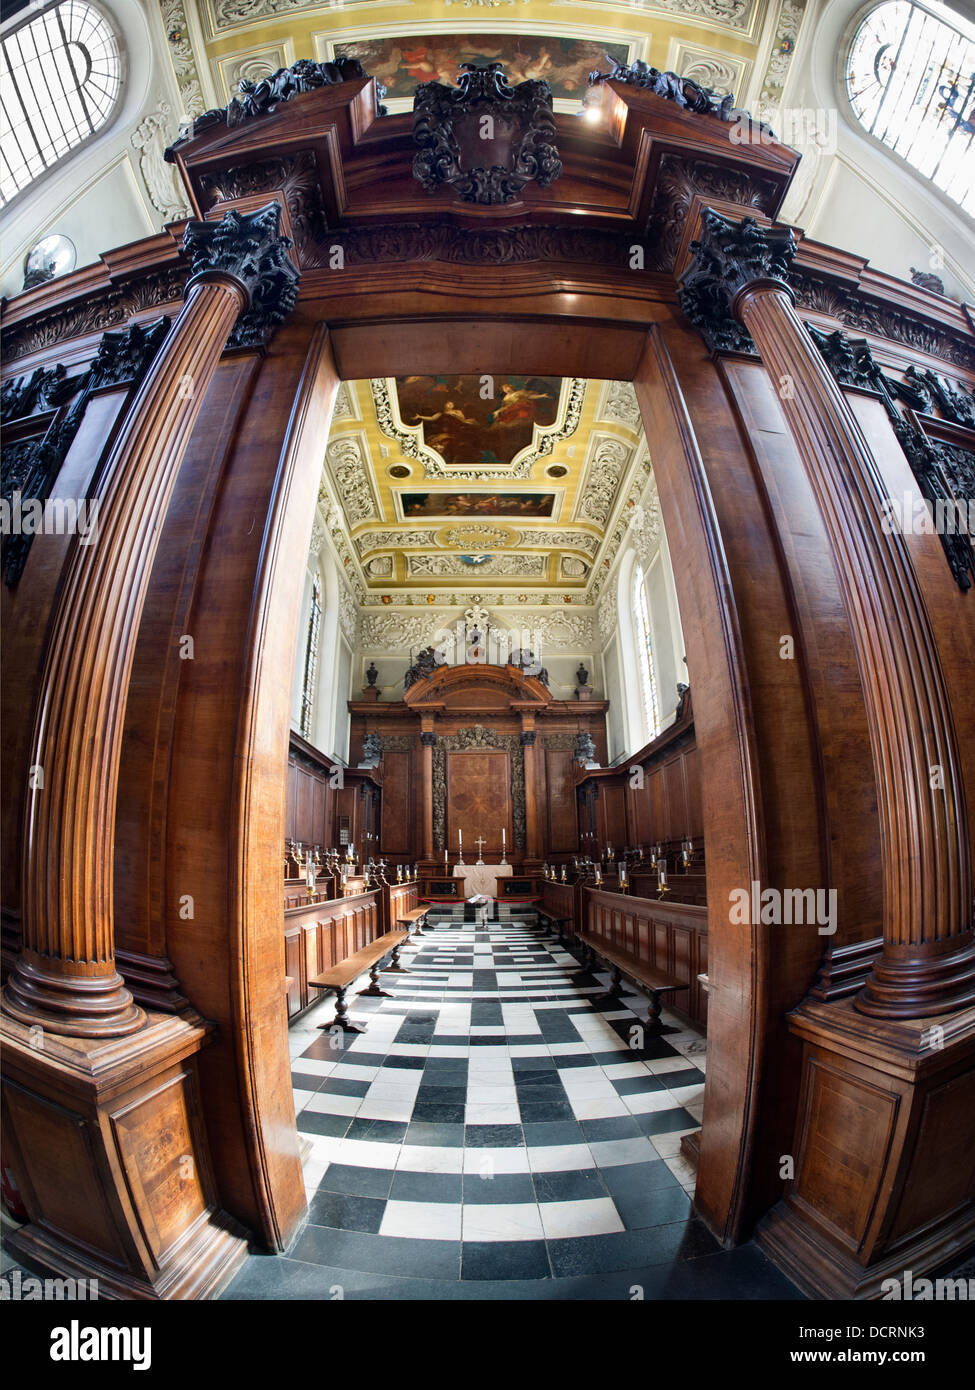 The Chapel of Trinity College, Oxford - fisheye view 3 - Stock Image